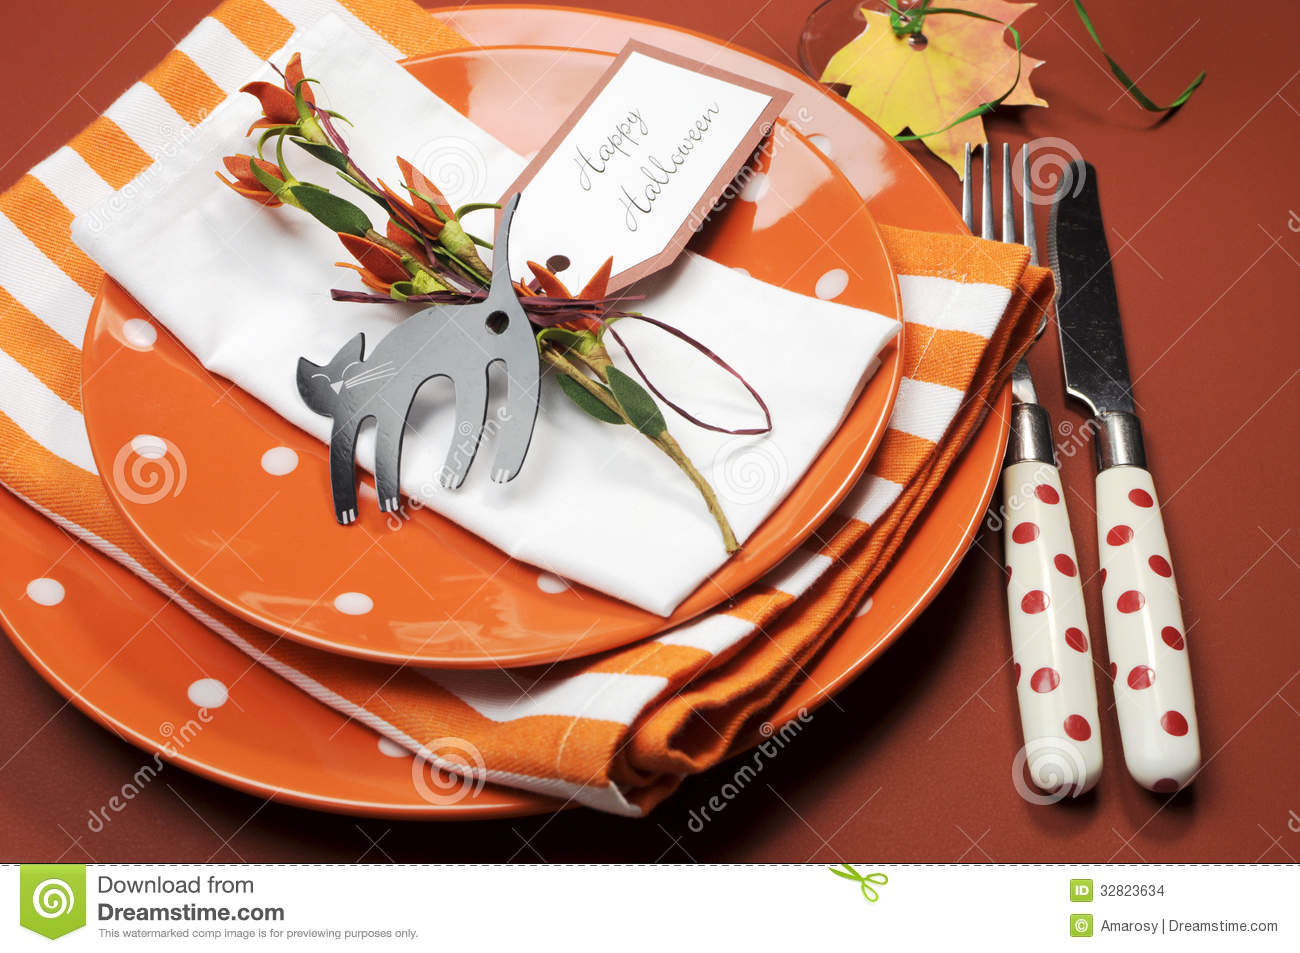 halloween orange polka dot and stripes dinner table setting close up stock images - Halloween Place Settings